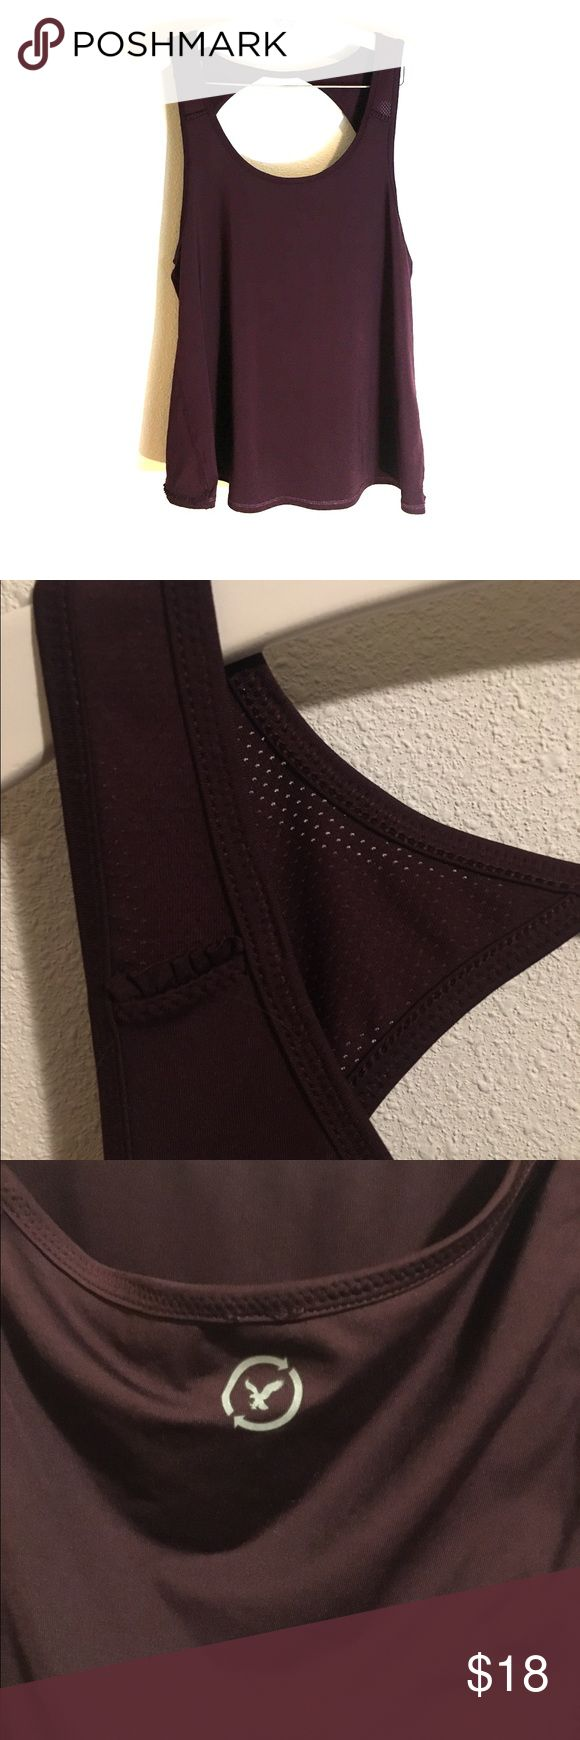 American Eagle maroon work out tank top This is an maroon American Eagle work out tank top size medium. It is a flexible spandex material and the upper back and shoulder straps are mesh and see through. The top of the back has a circular open cut out, and as pictured in the fourth image the back pieces drape over each other. Worn once and willing to discount with bundle. 🌷 American Eagle Outfitters Tops Tank Tops